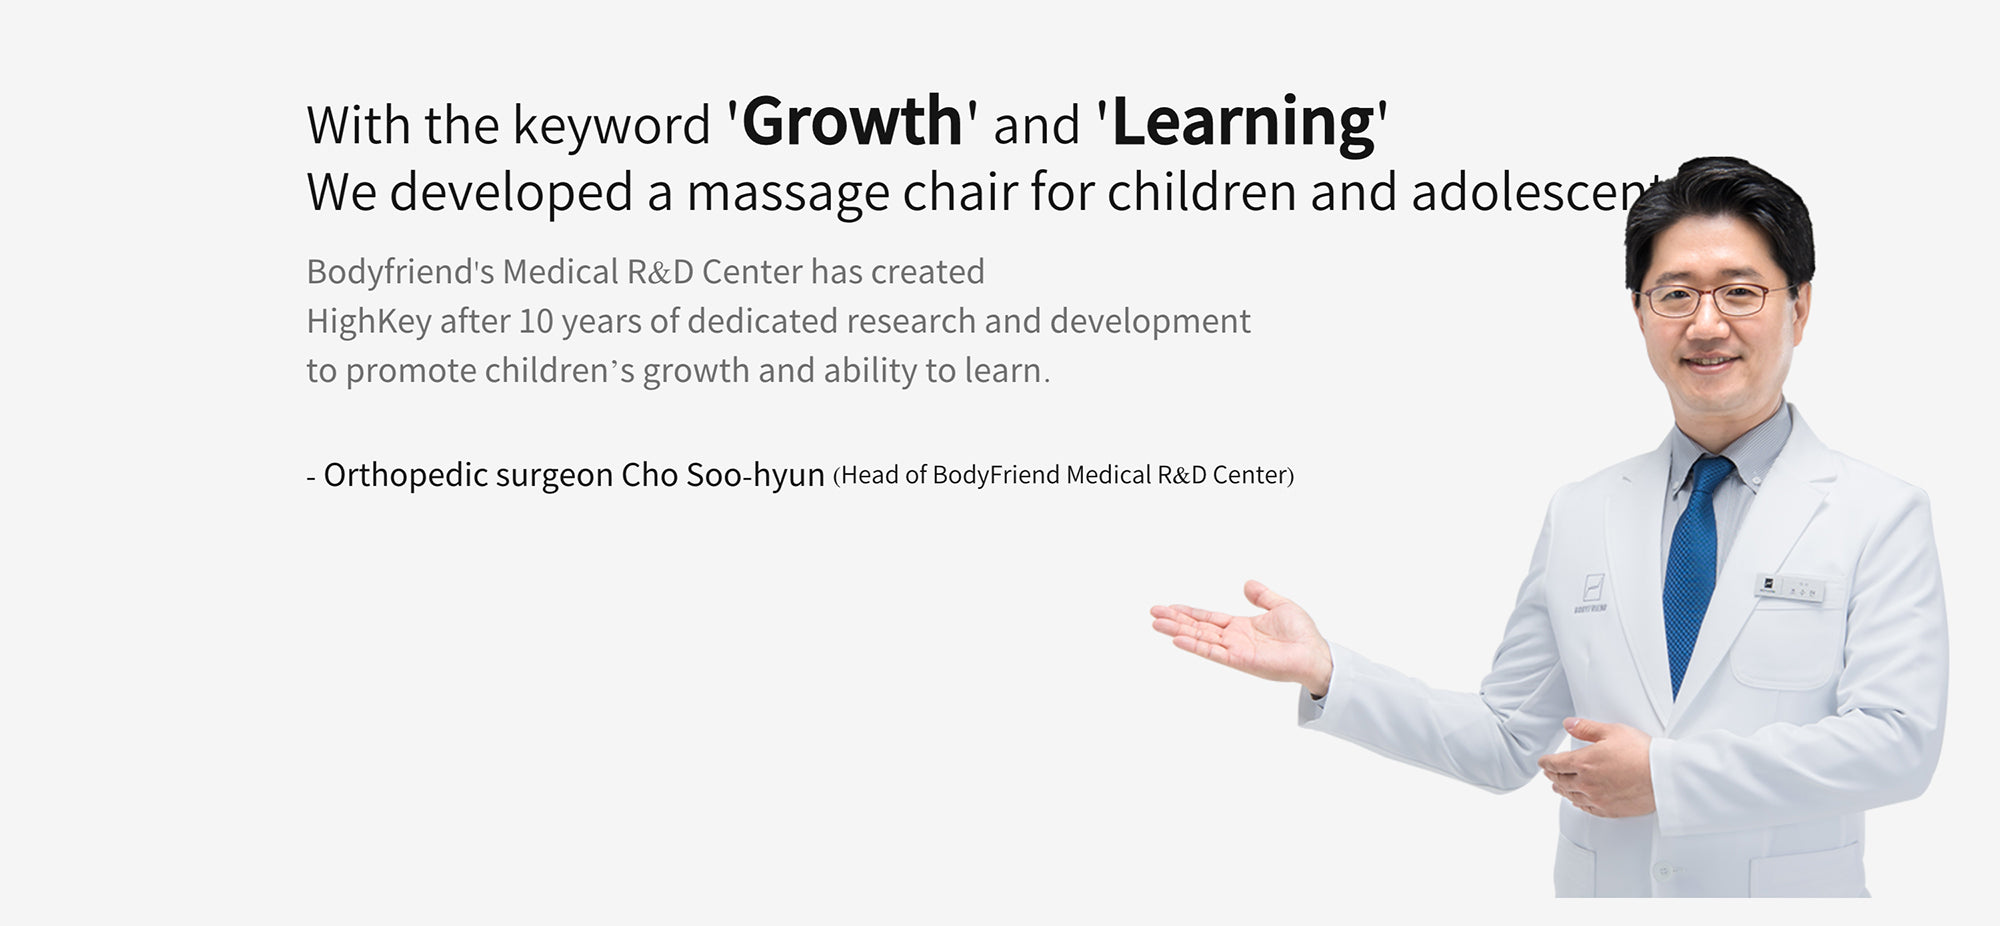 With The keyword 'Growth' And 'Learning', We Developed A Massage Chair For children And Adolescent